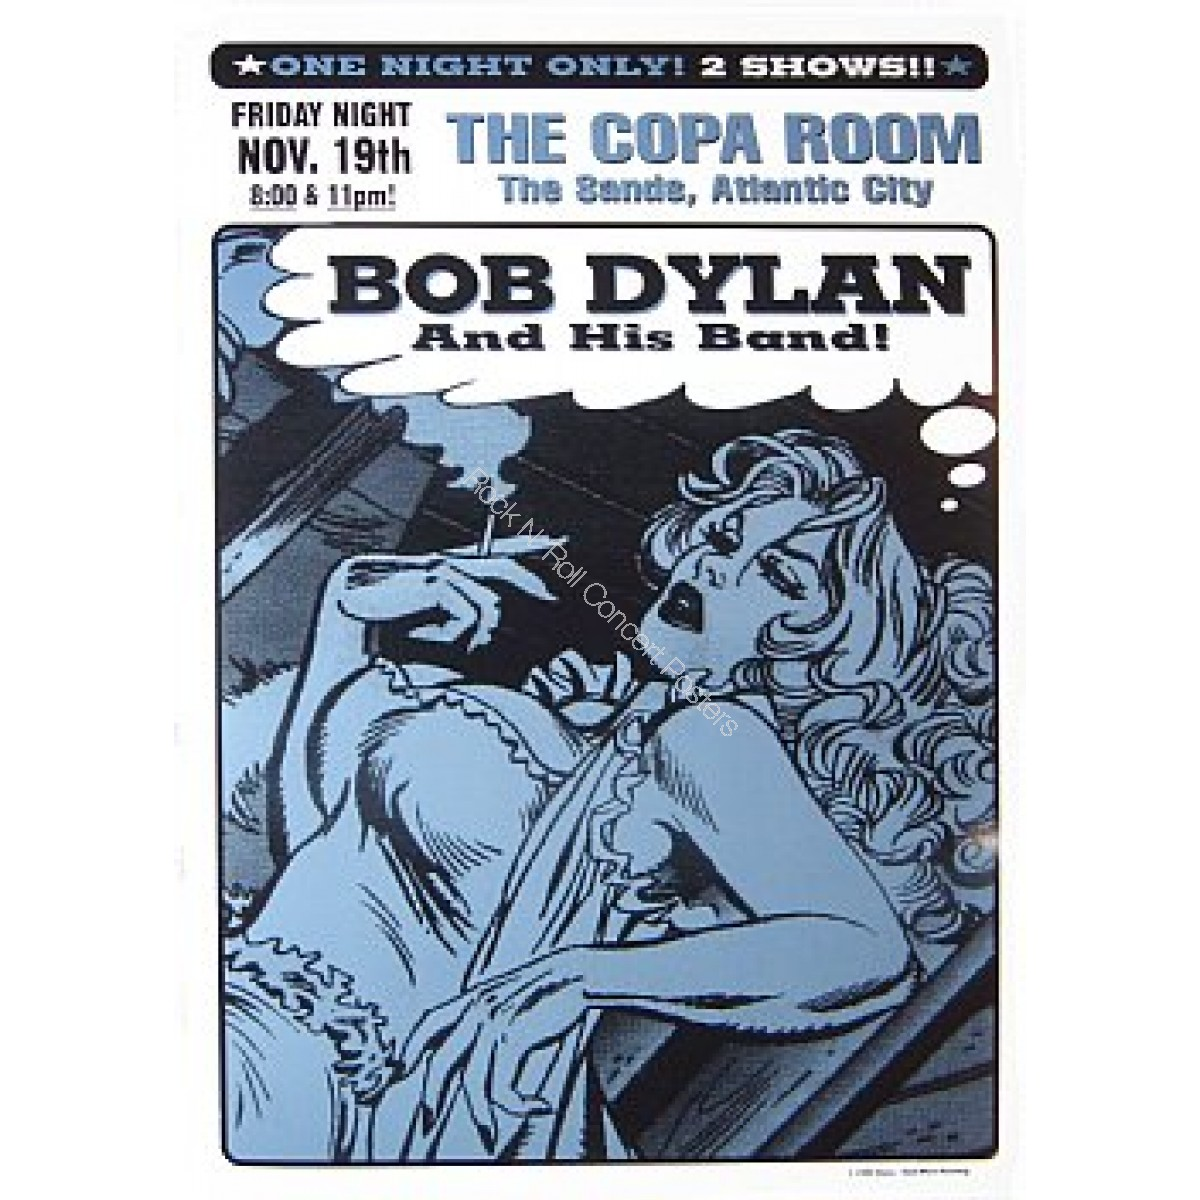 Bob Dylan & His Band @ The Copa Room